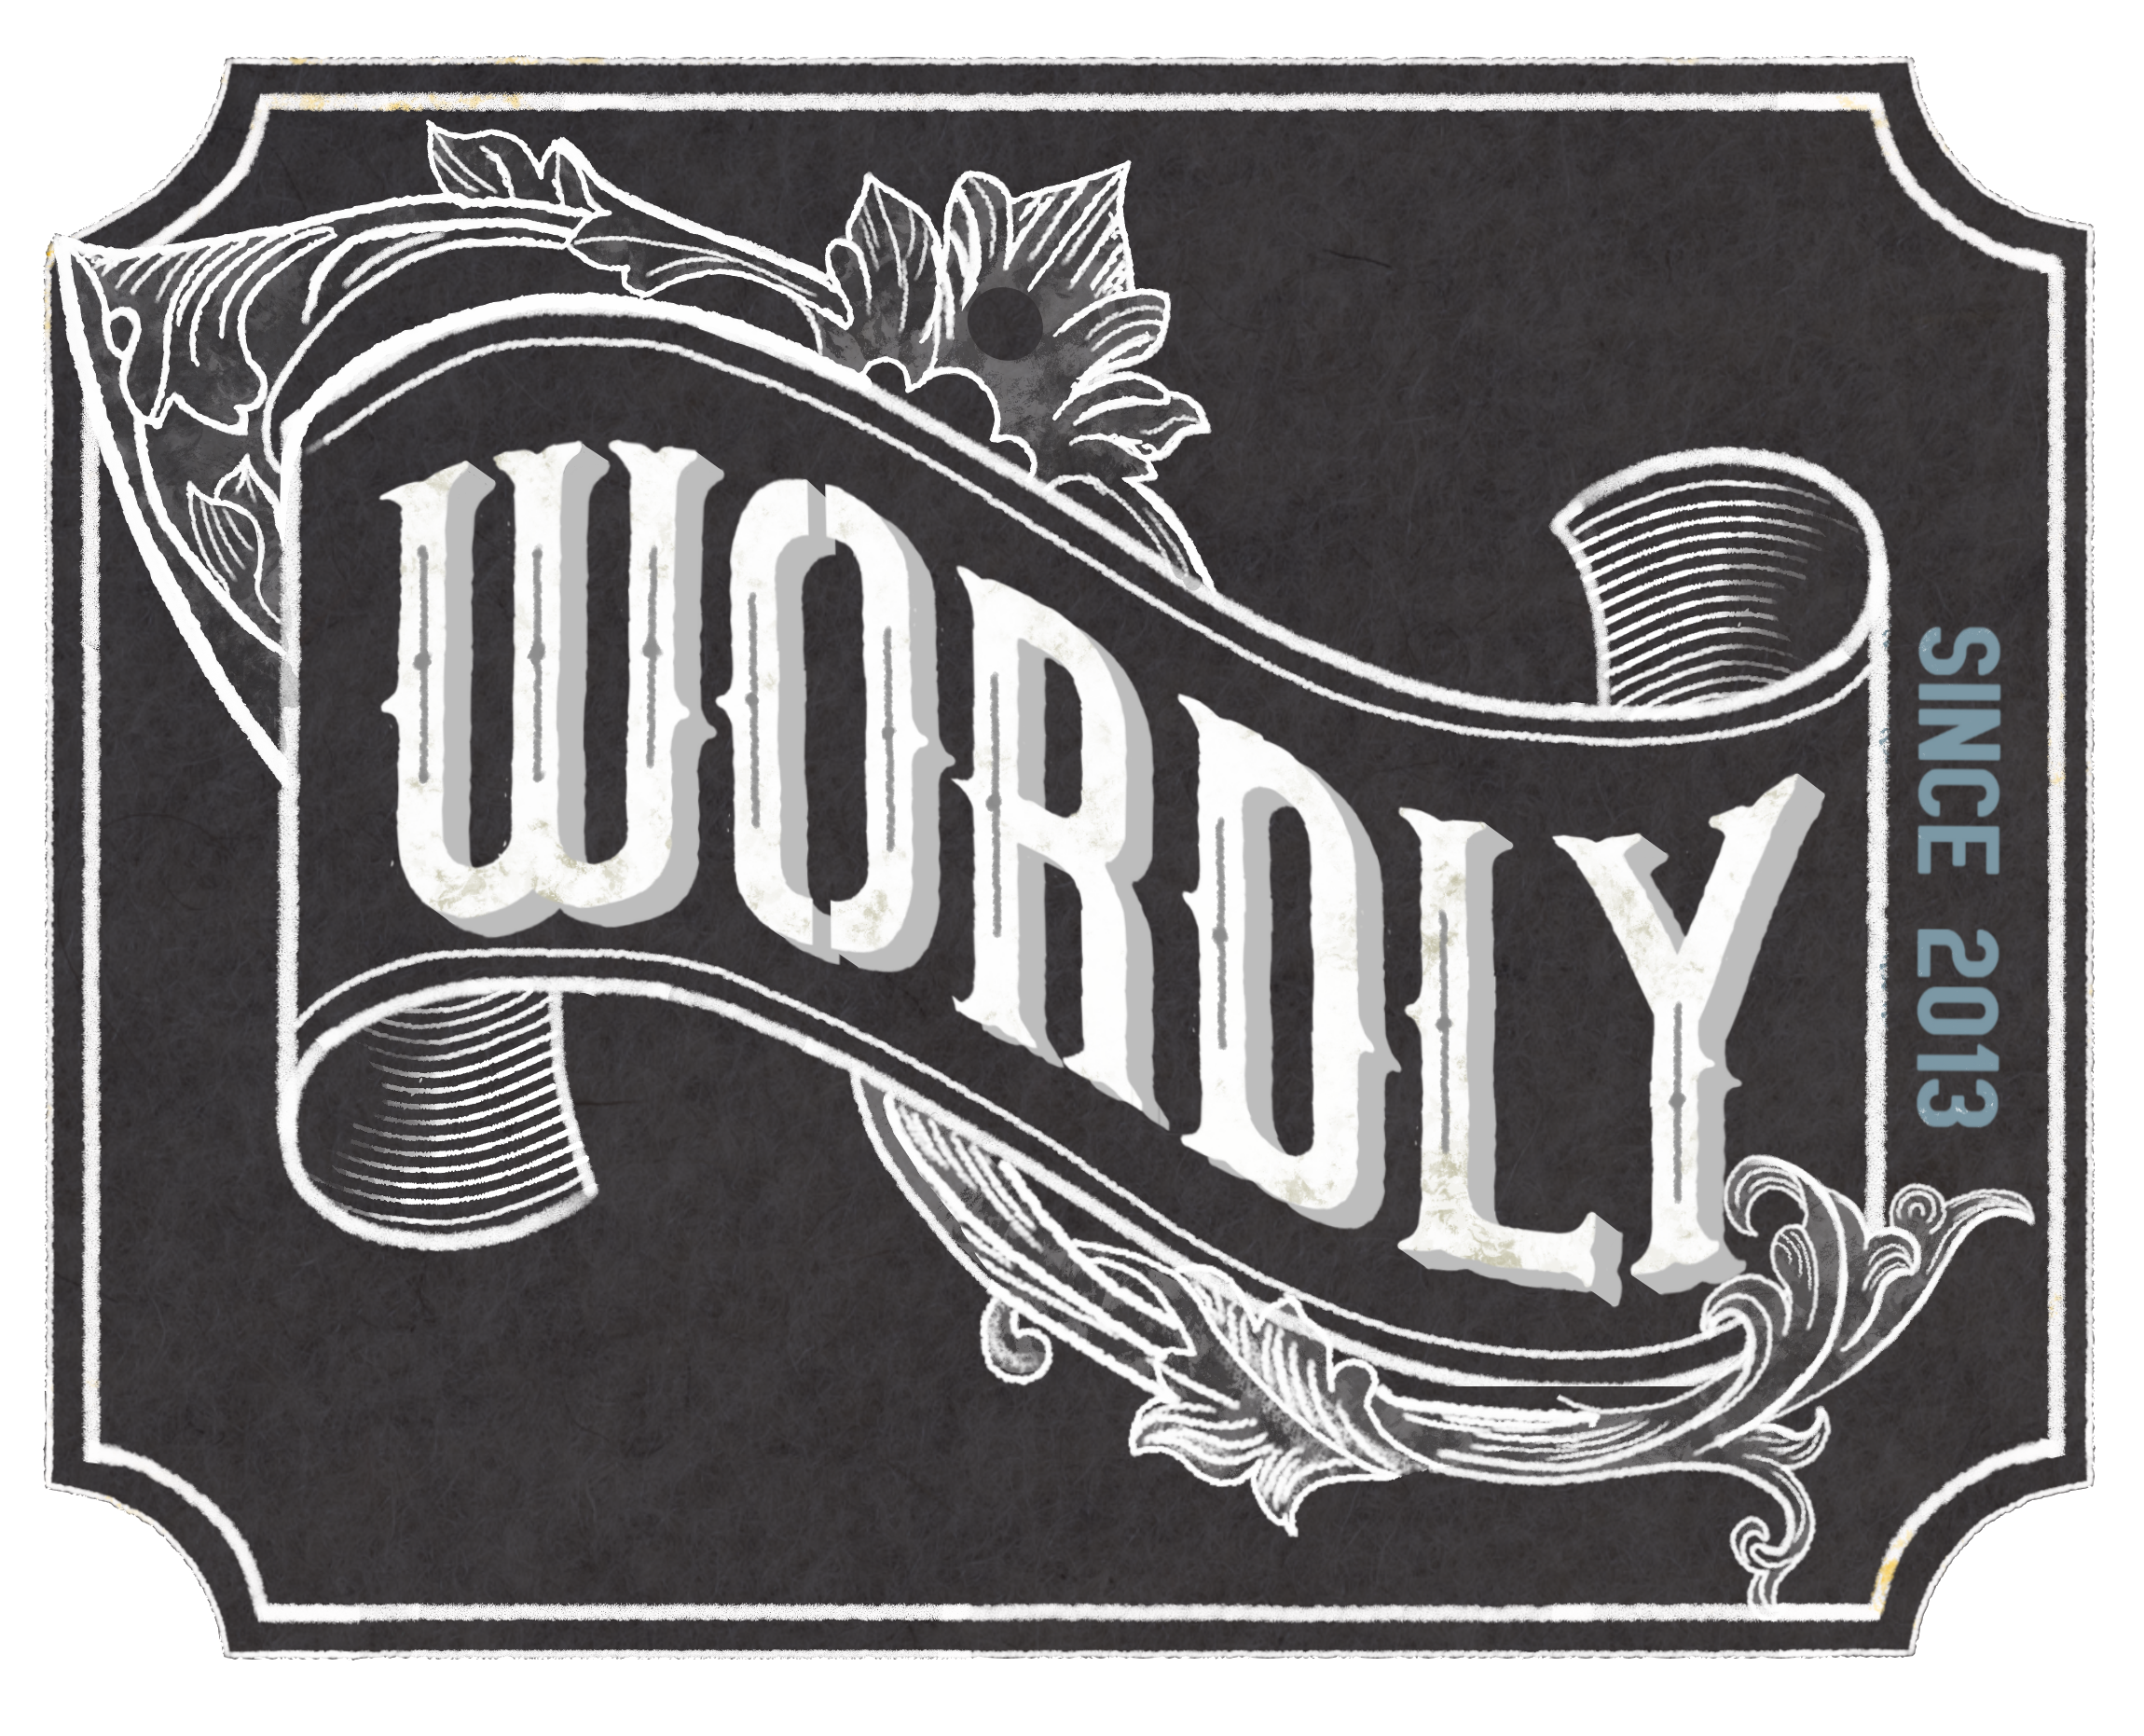 wordly retro